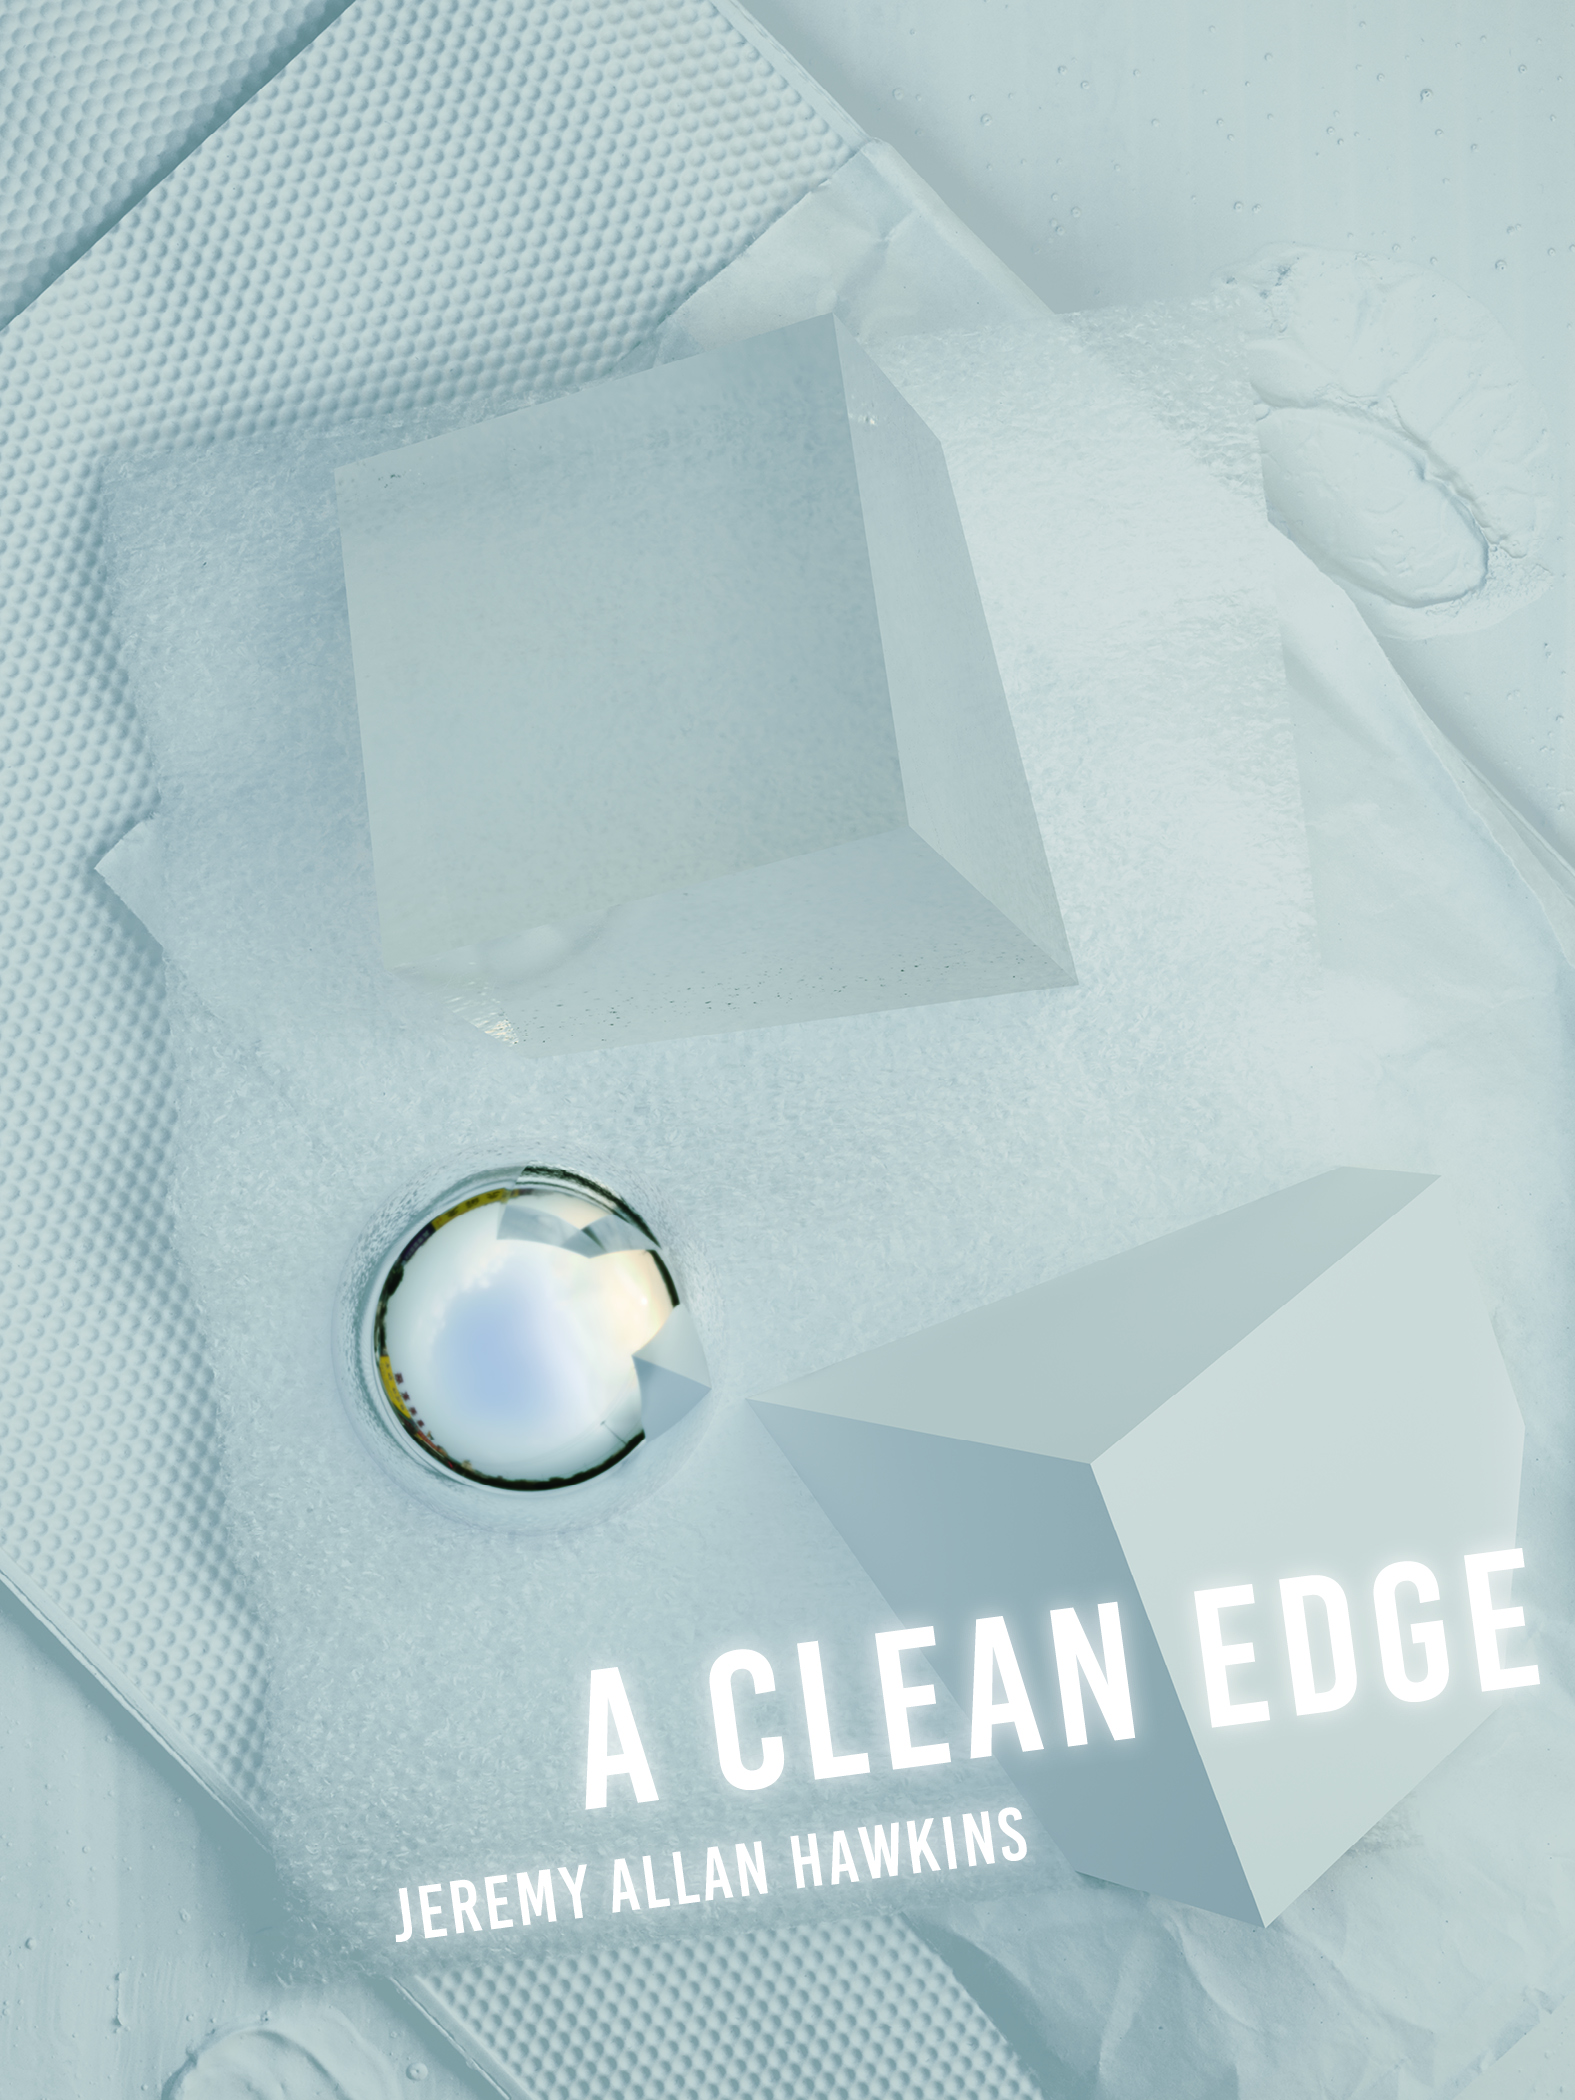 Cover layout + interior design for Jeremy Allan Hawkin's  A Clean Edge , winner of the 2016 BOAAT Chapbook Prize, selected by Richard Siken ( BOAAT Press , 2017).